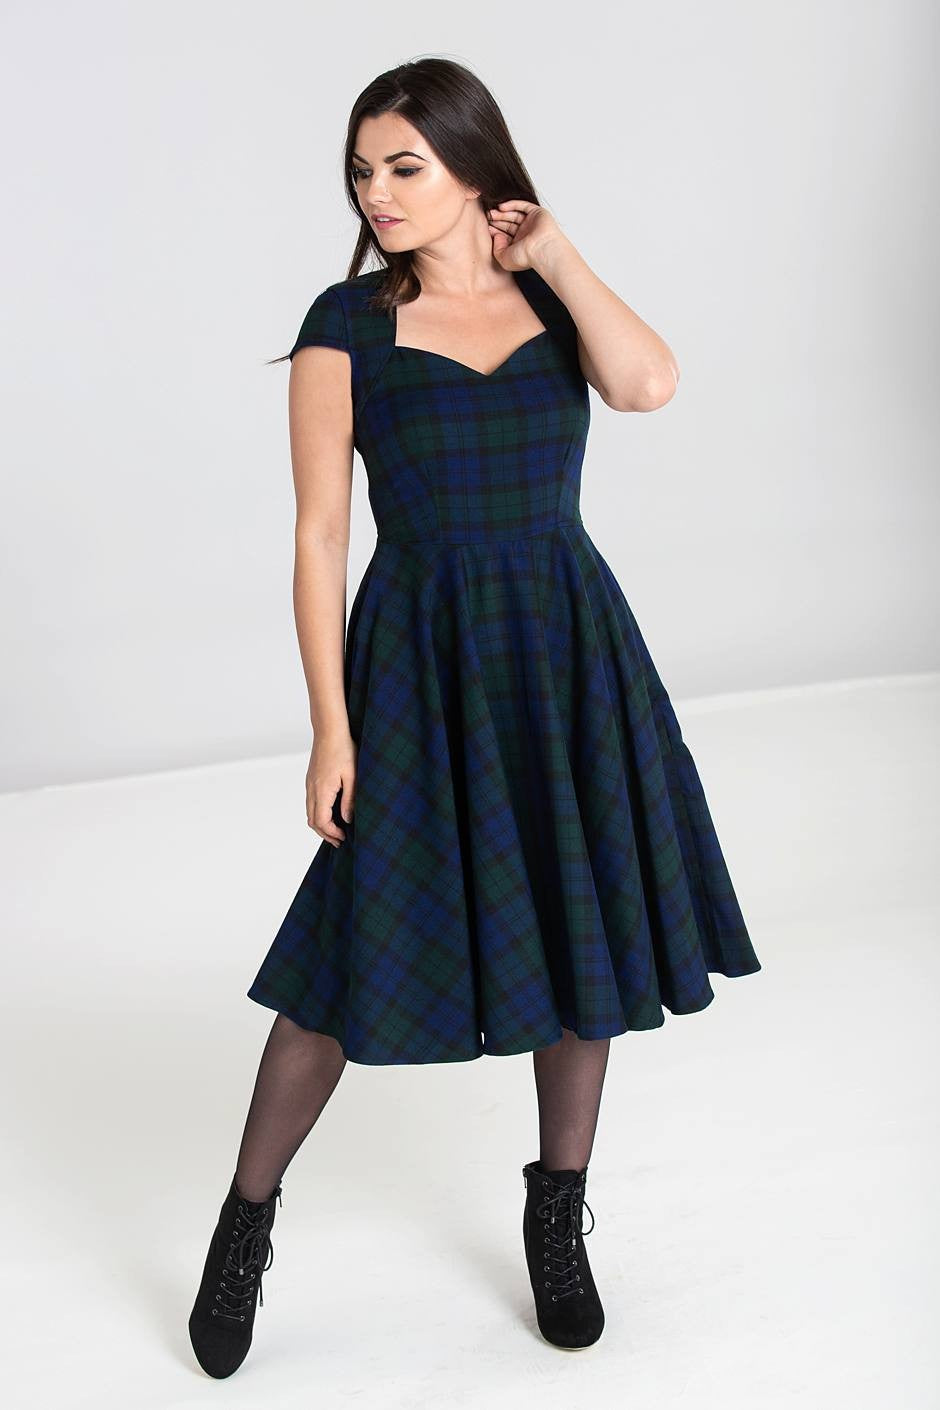 Aberdeen Dublin Tartan 50s Dress